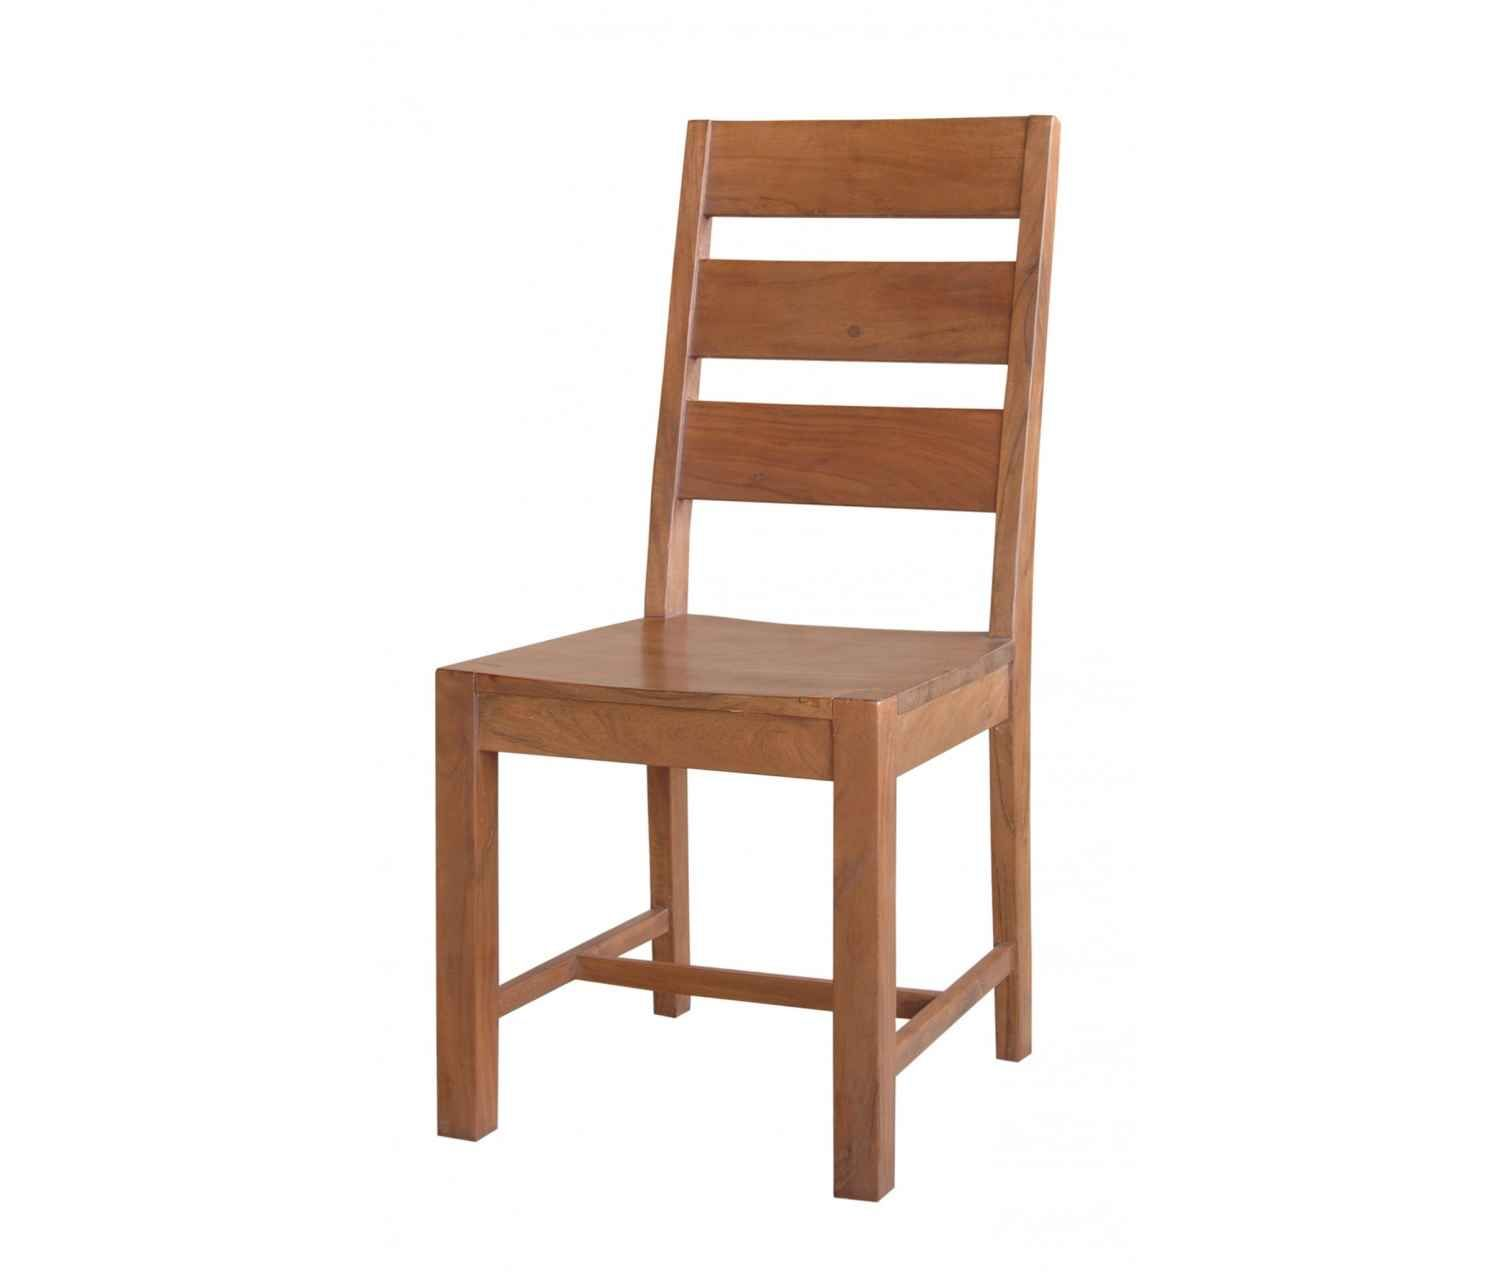 Dining Chairs Online Cheap Wood Chairs Diy Wooden Dining Room Chair Furniture